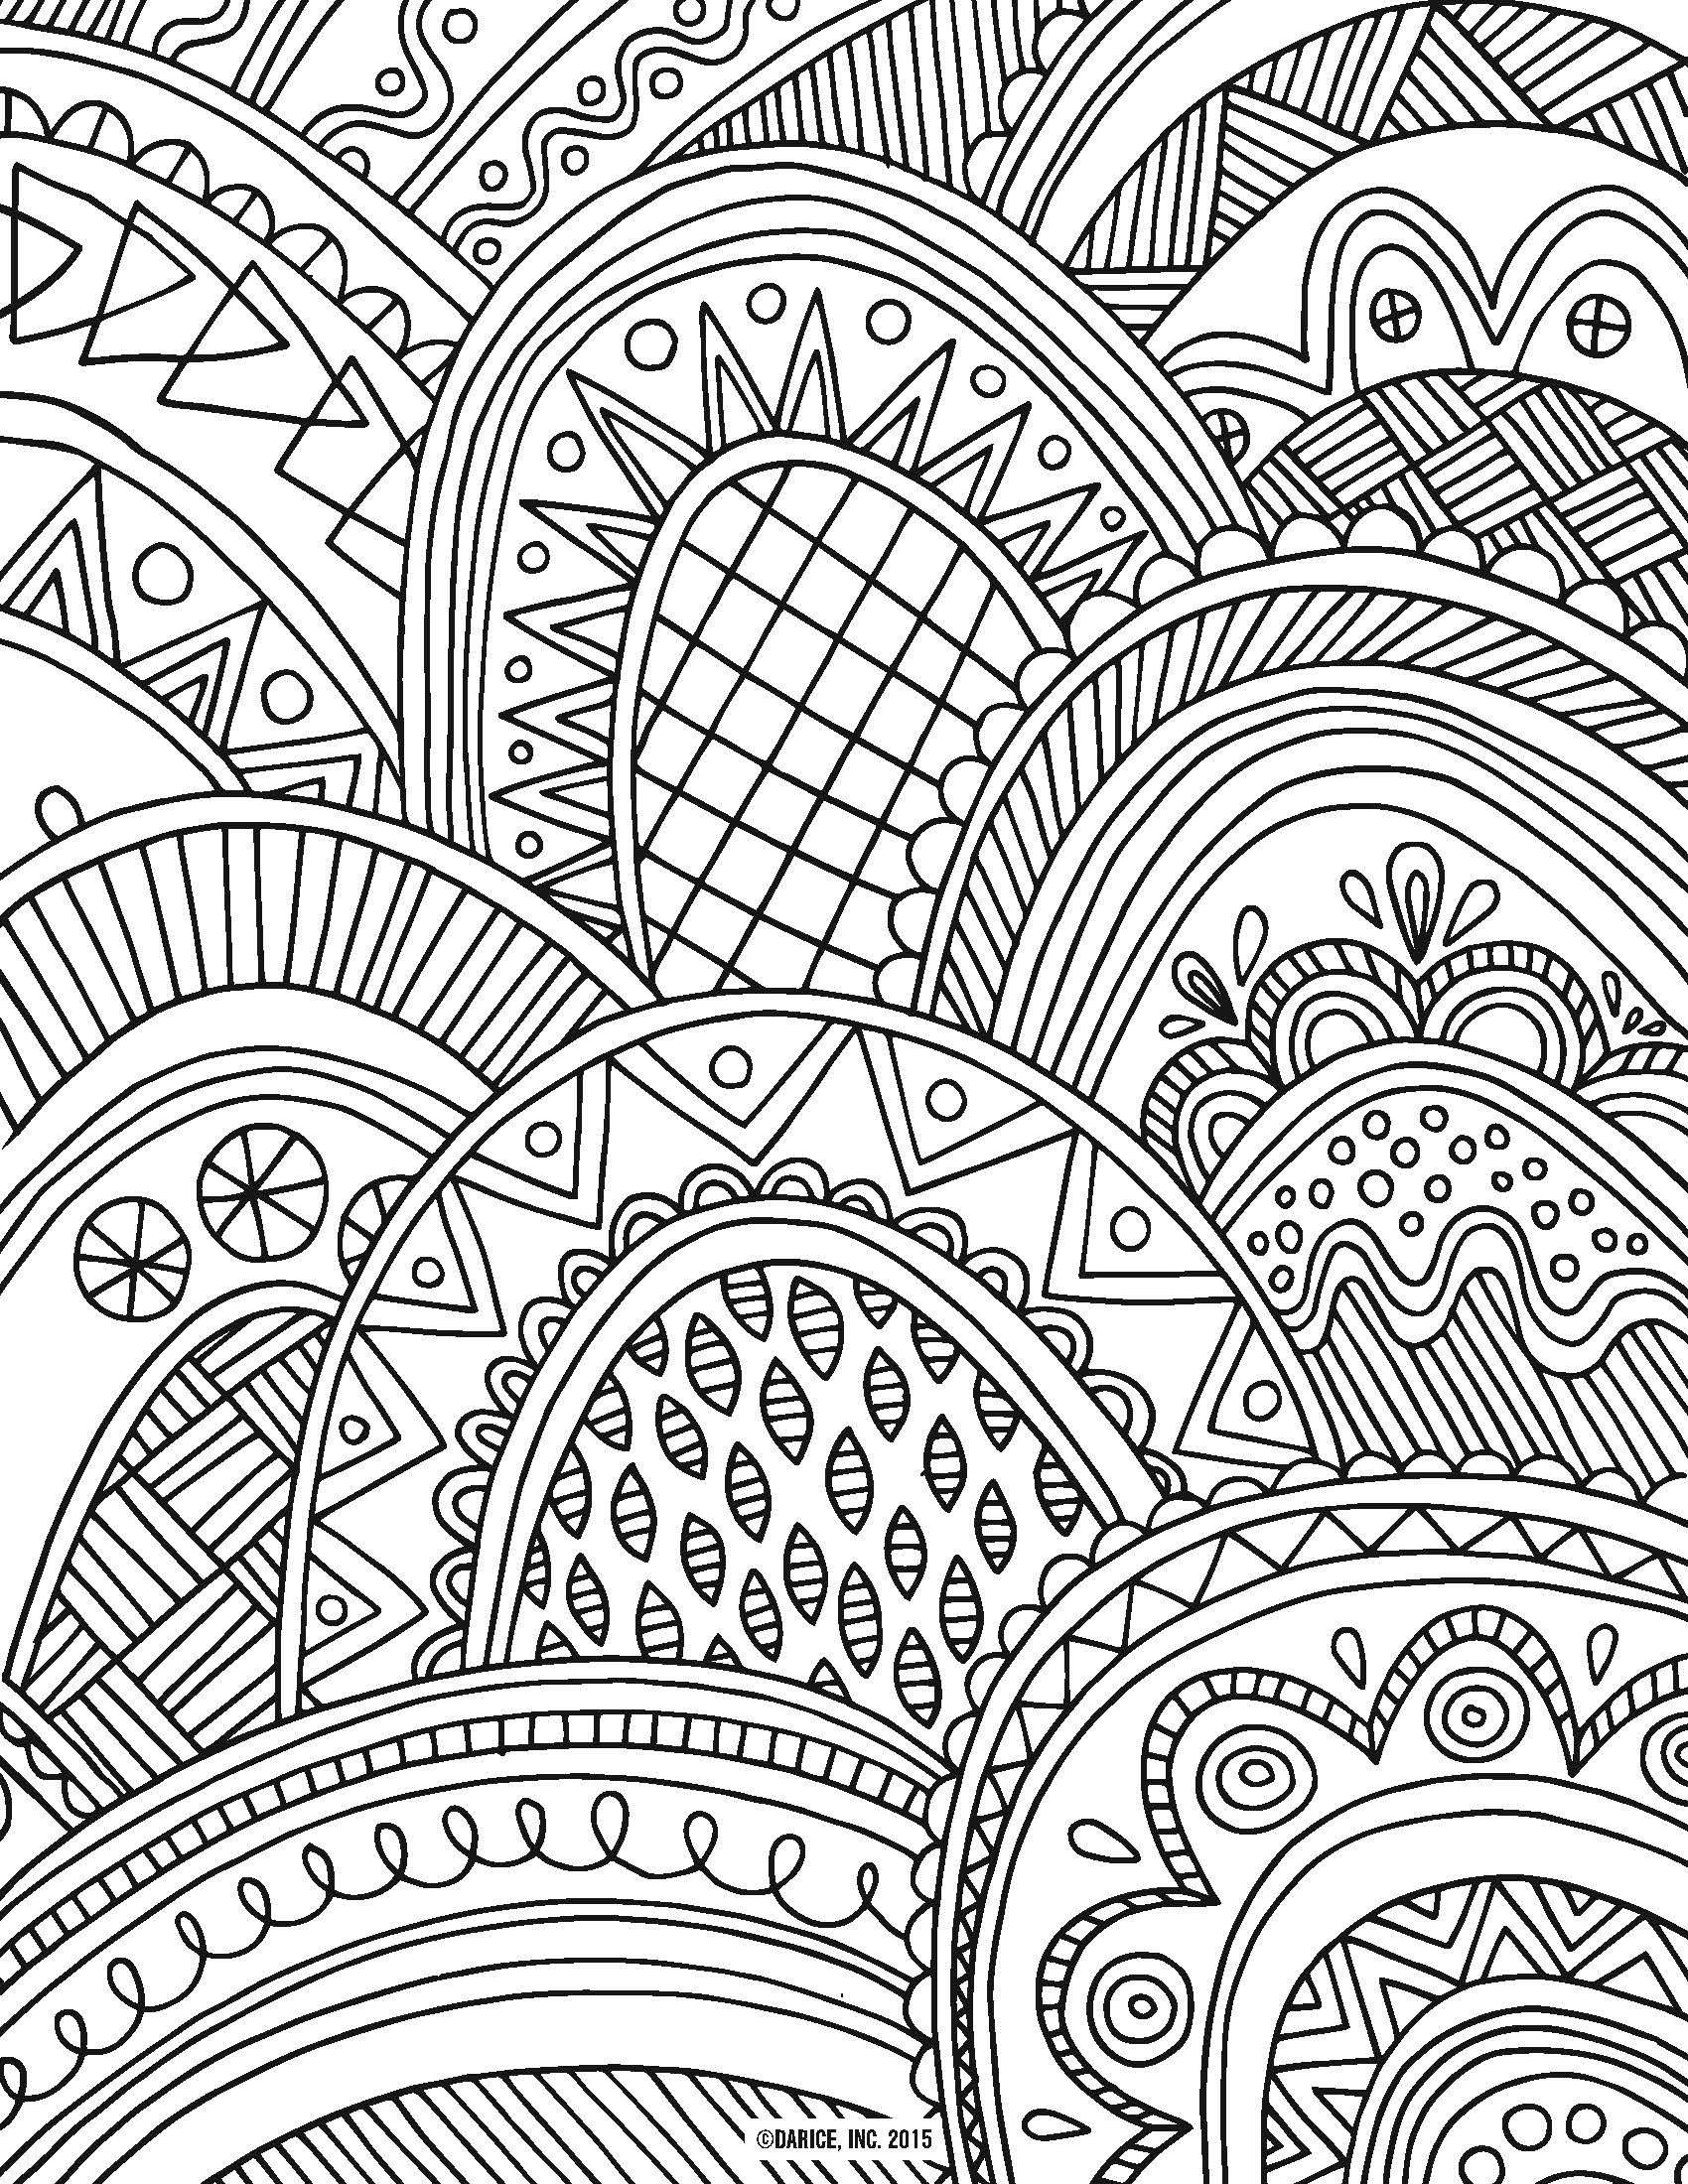 coloring pages of make any picture a coloring page with ipiccy ipiccy coloring of pages